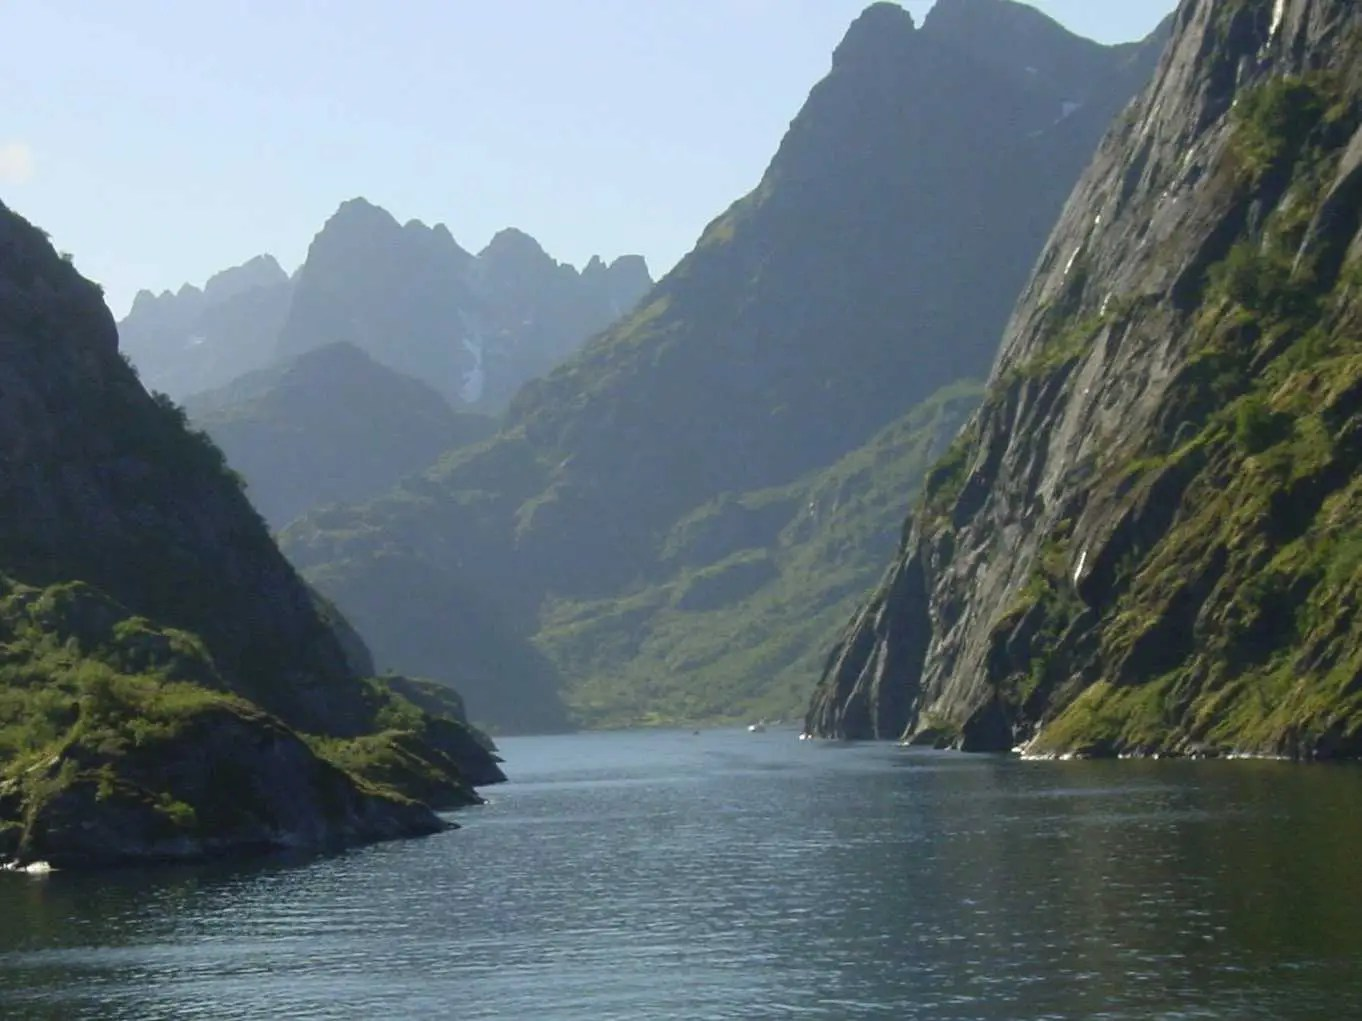 Cruise Norway's imposing fjords, created by eroding glaciers.